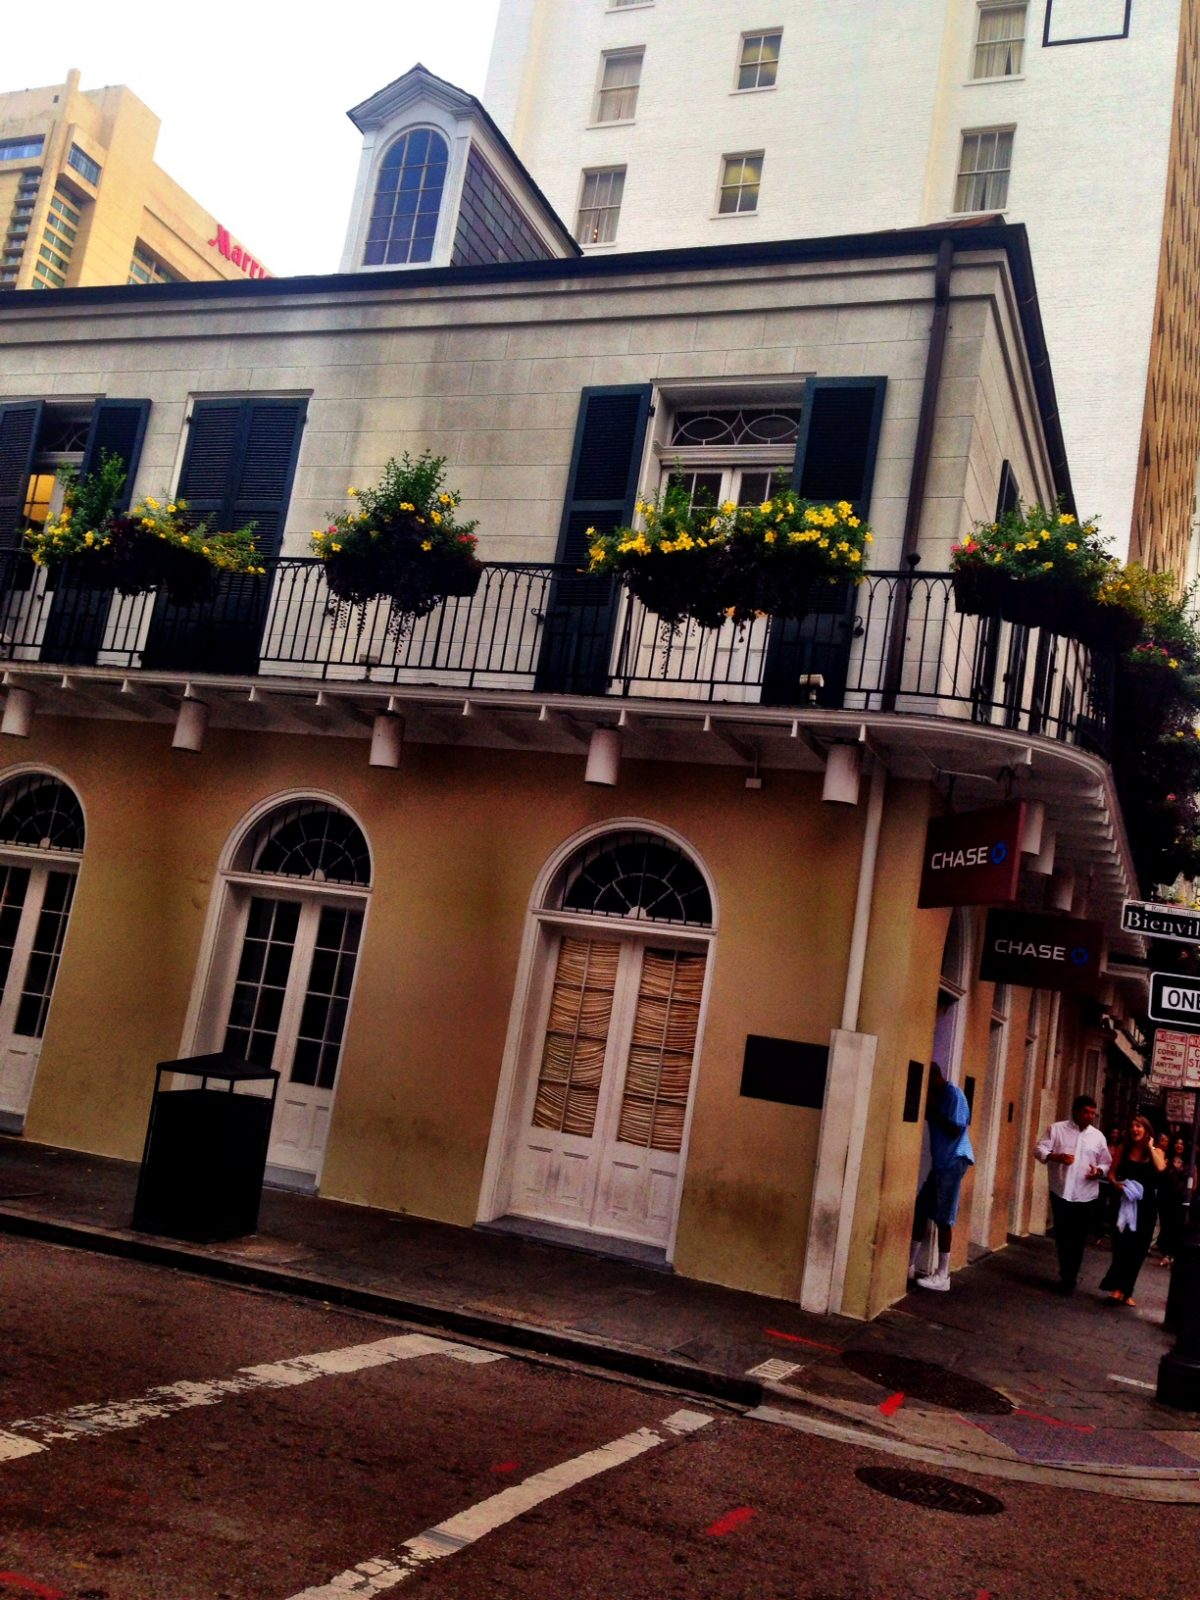 Our New Orleans Trip in Photos